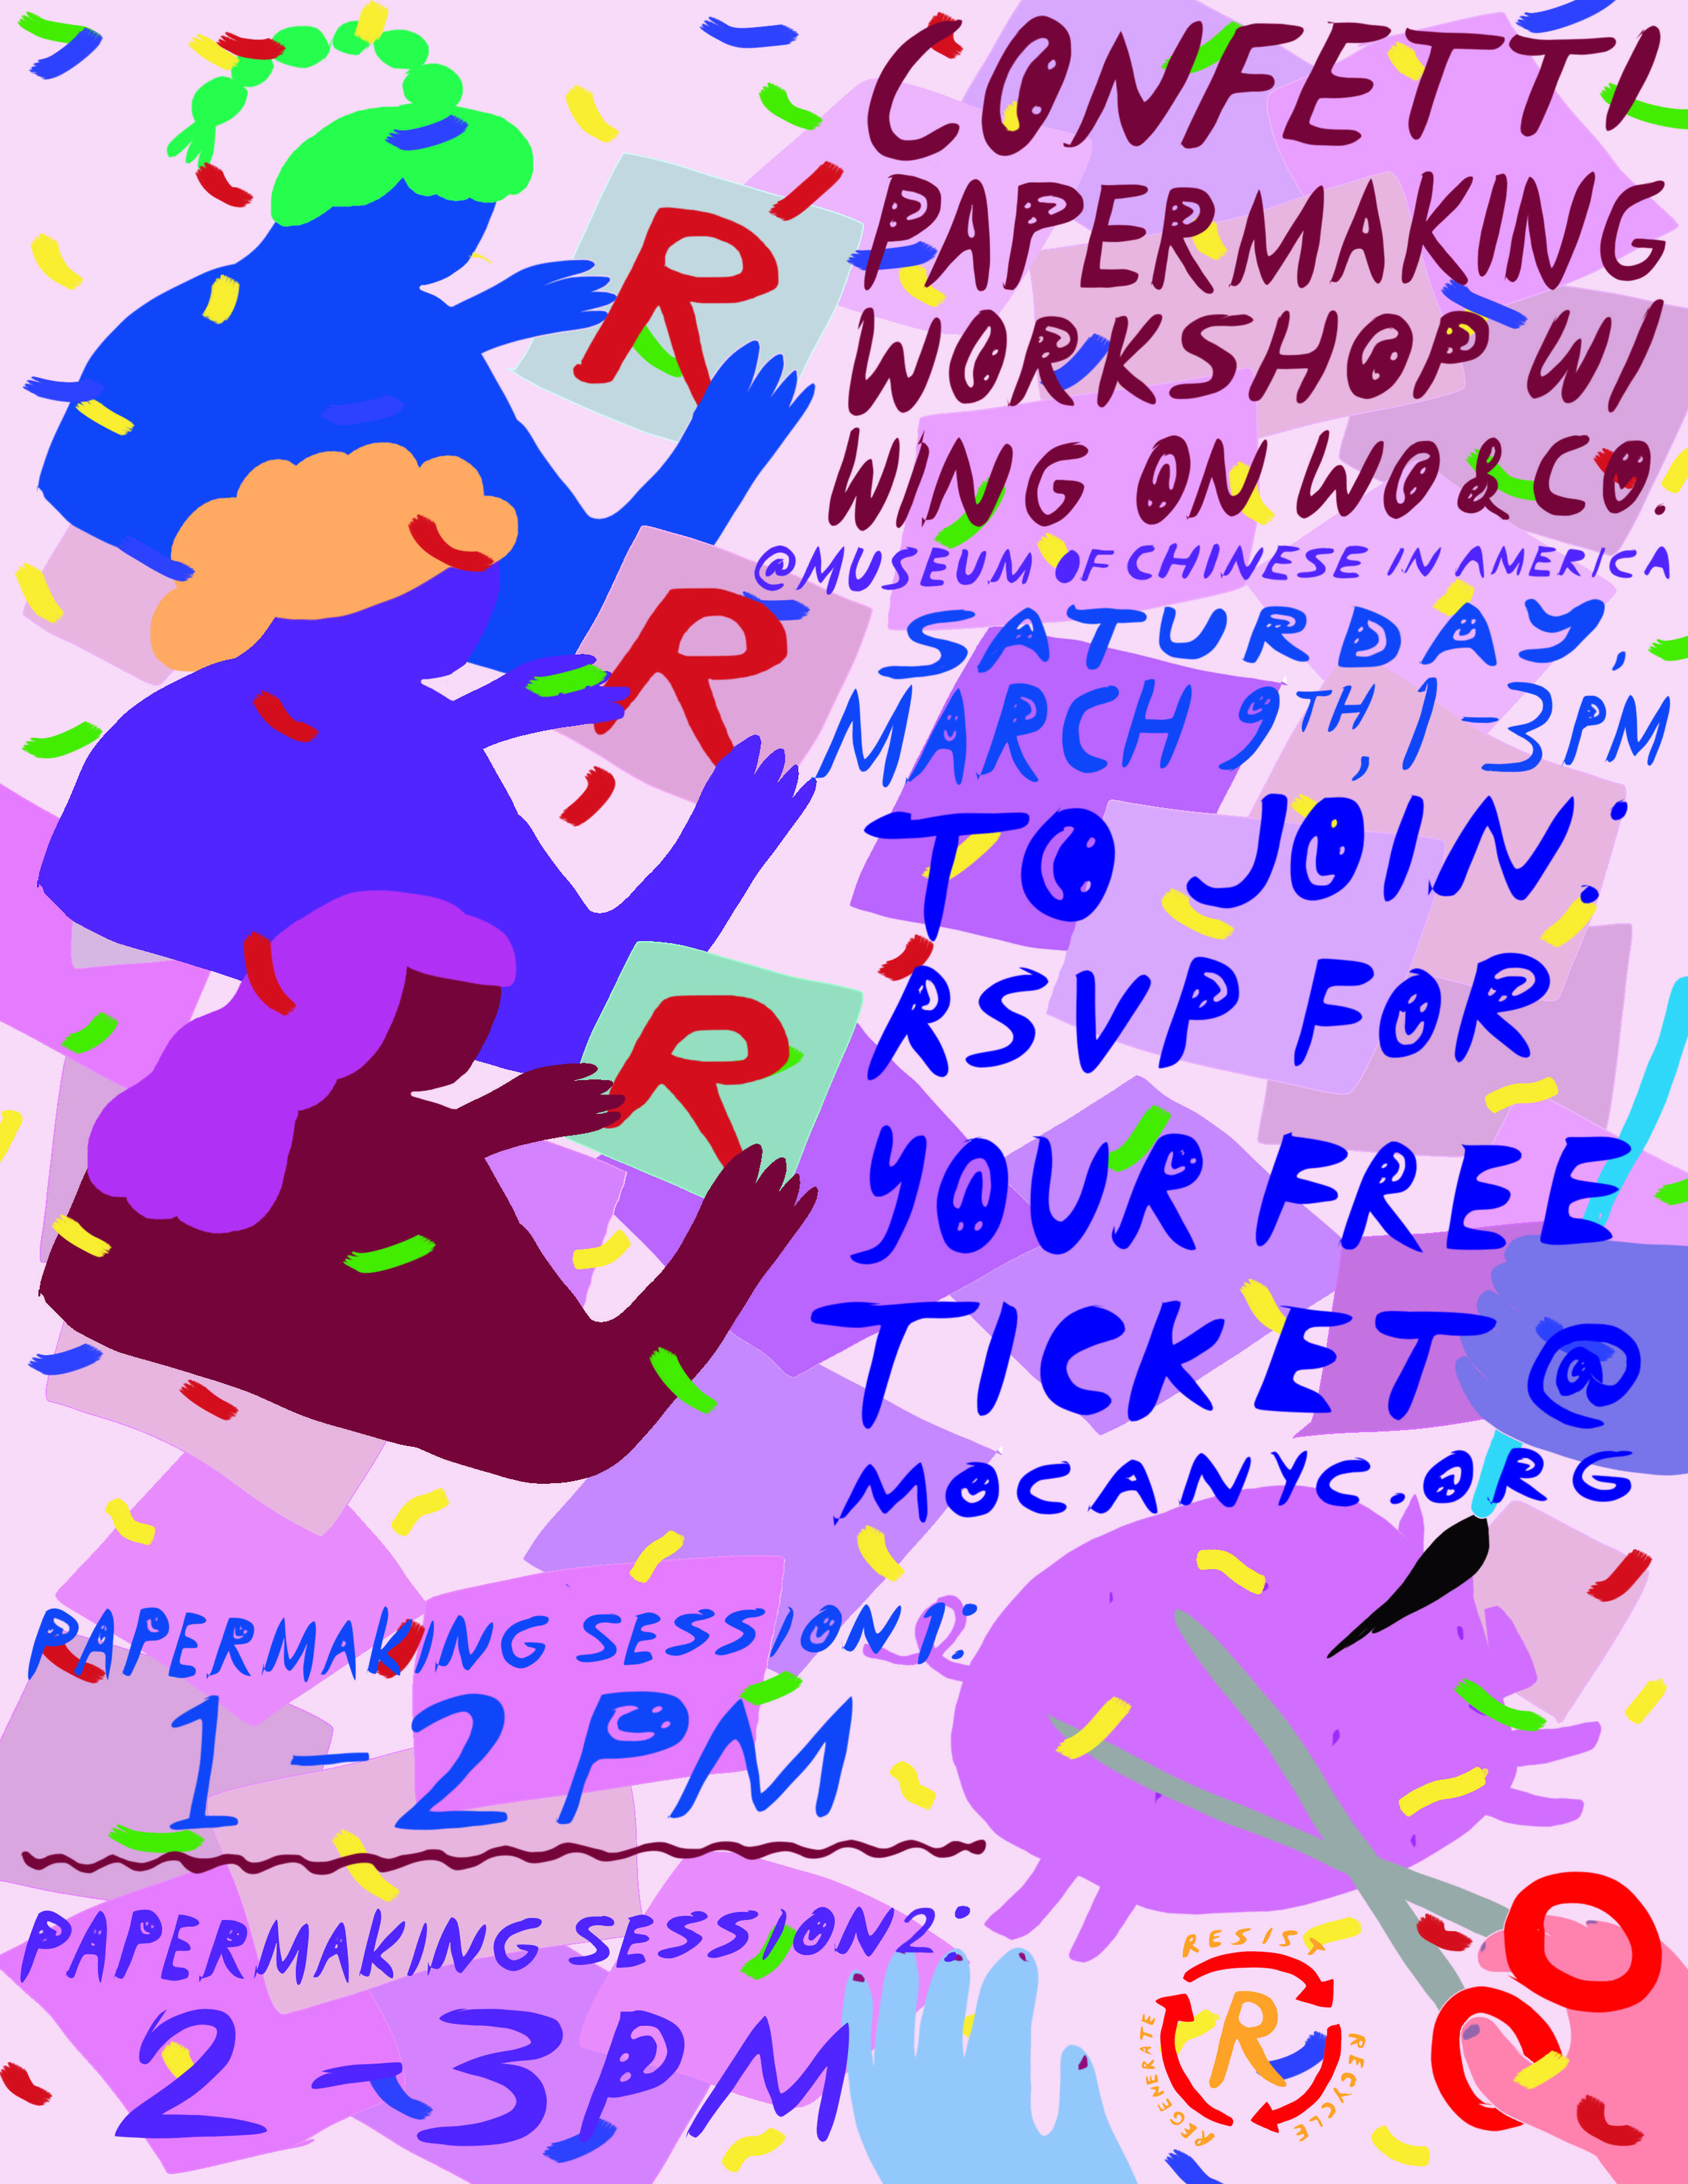 RRR papermaking workshop at MOCA flyer.jpg